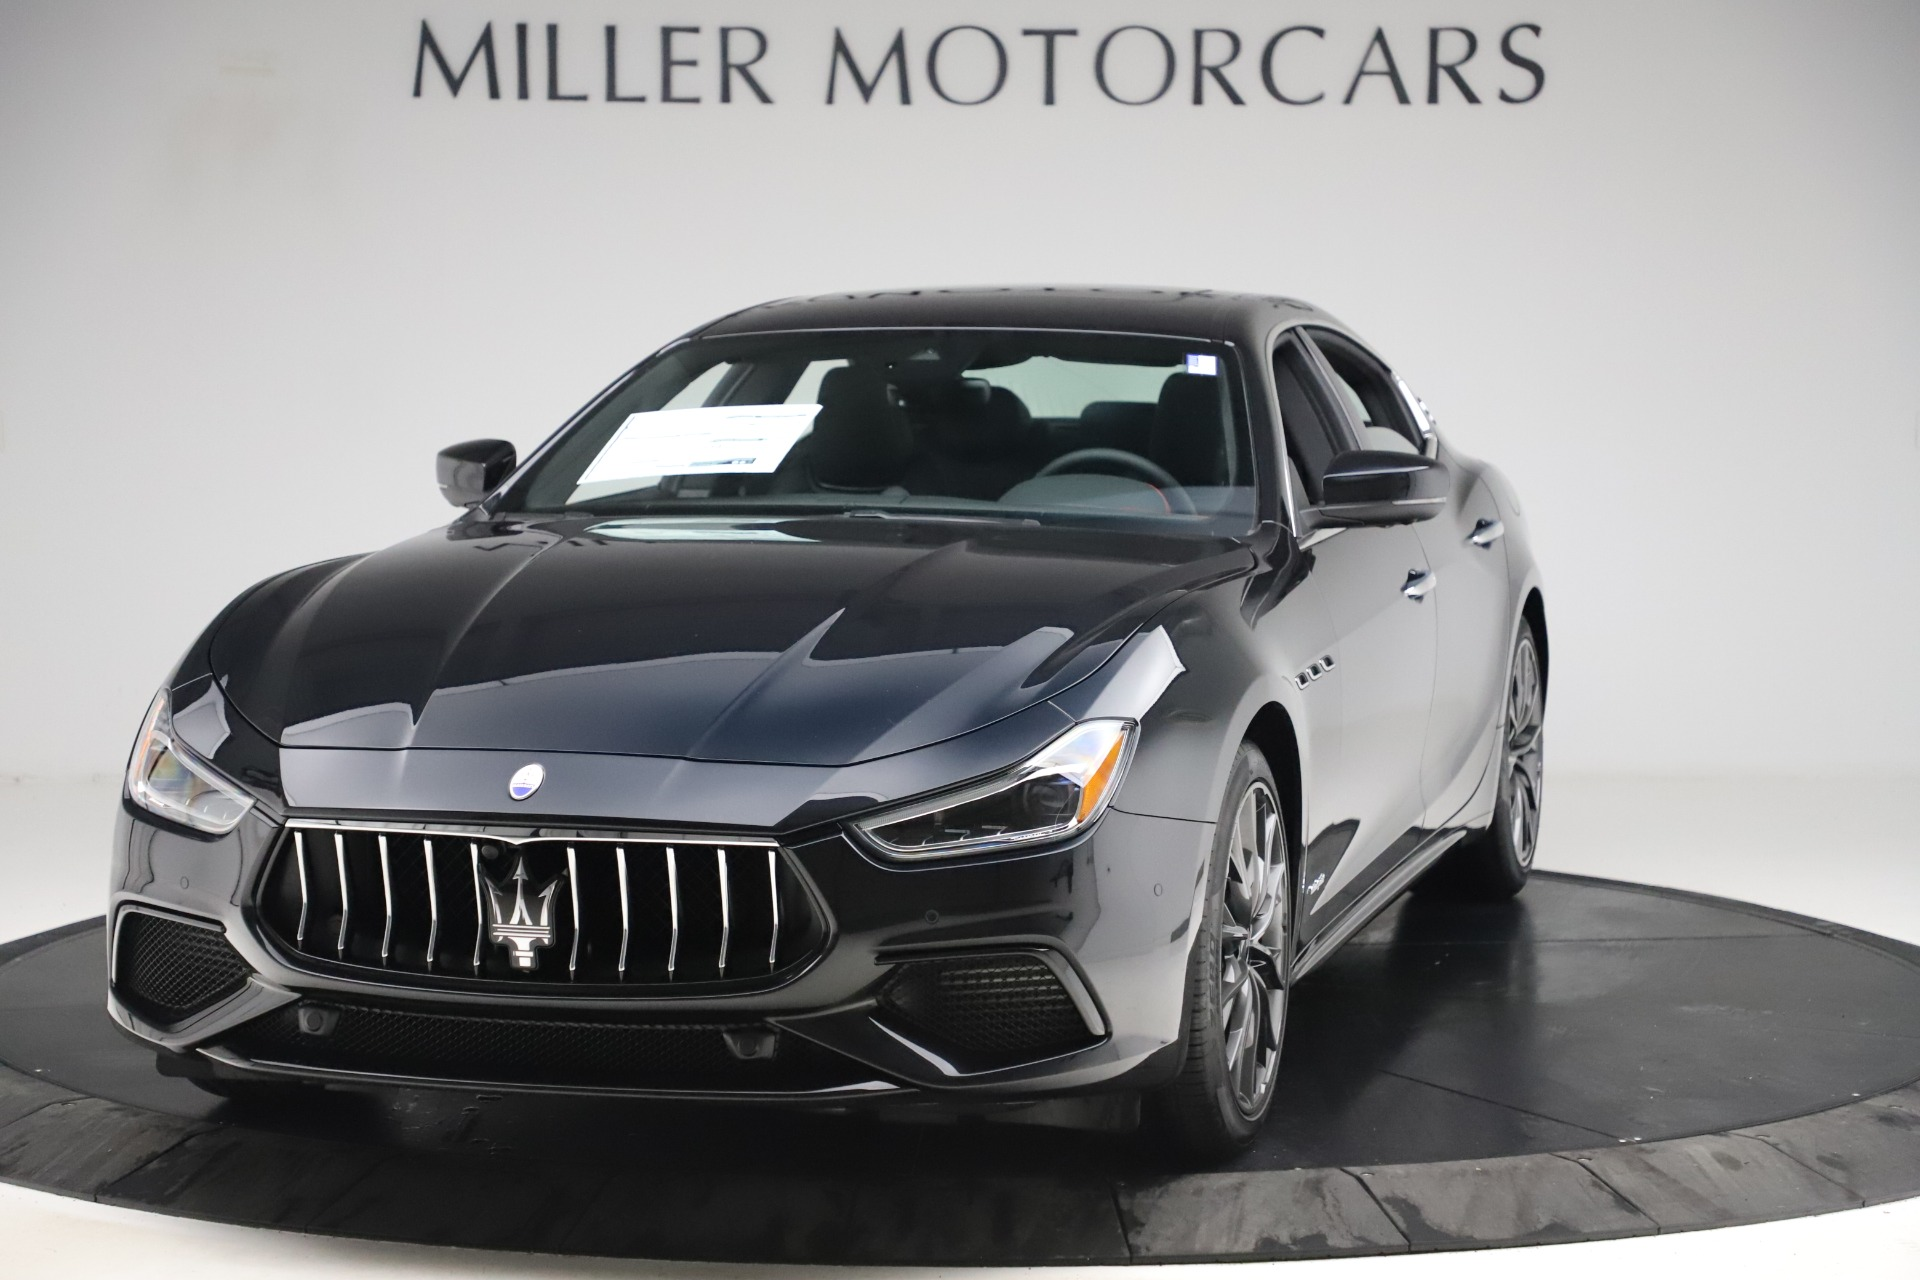 New 2019 Maserati Ghibli S Q4 GranSport for sale $99,905 at Pagani of Greenwich in Greenwich CT 06830 1